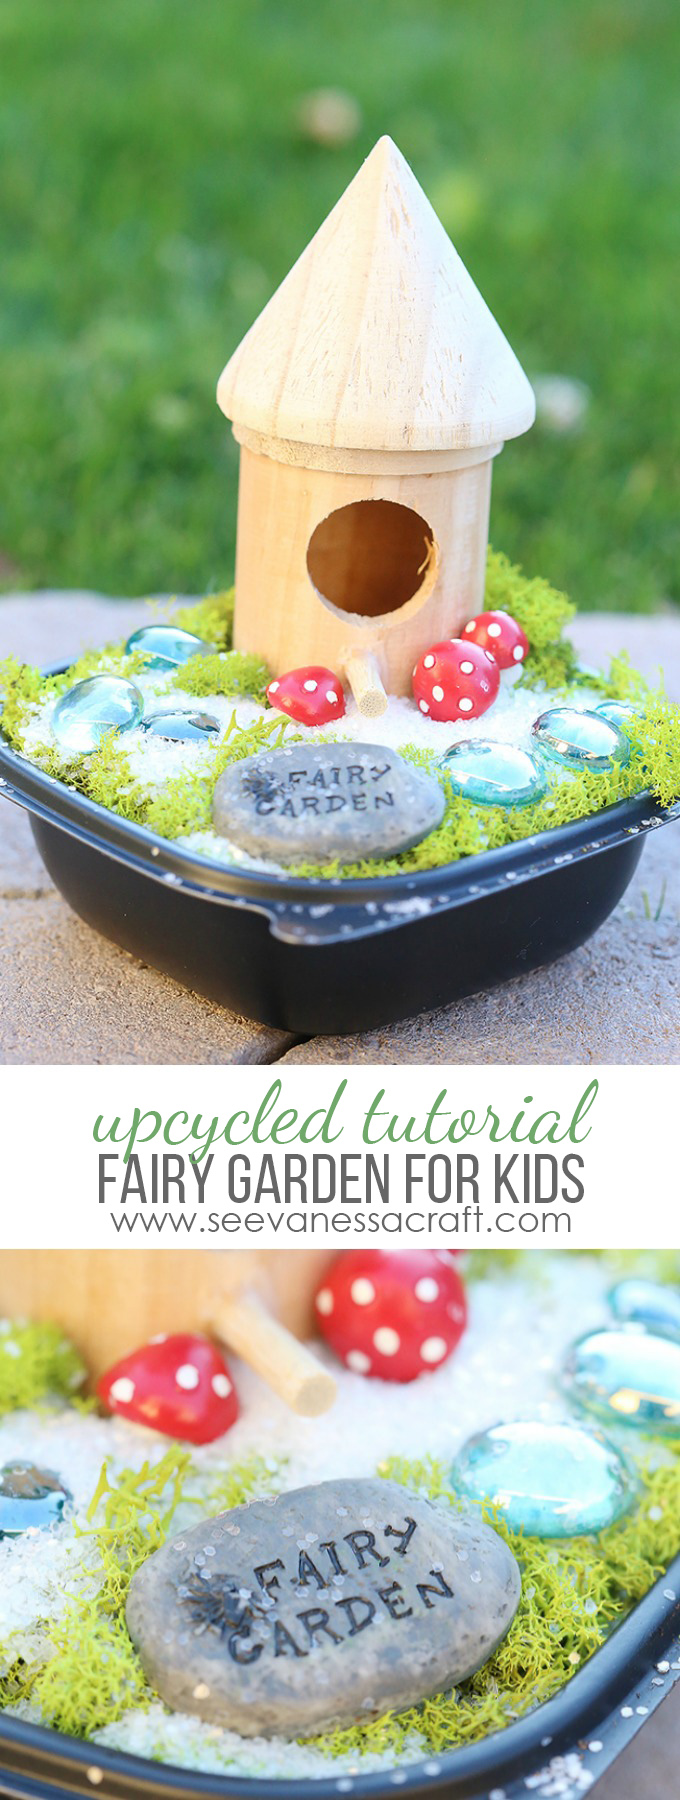 Upcycled Fairy Garden for Kids